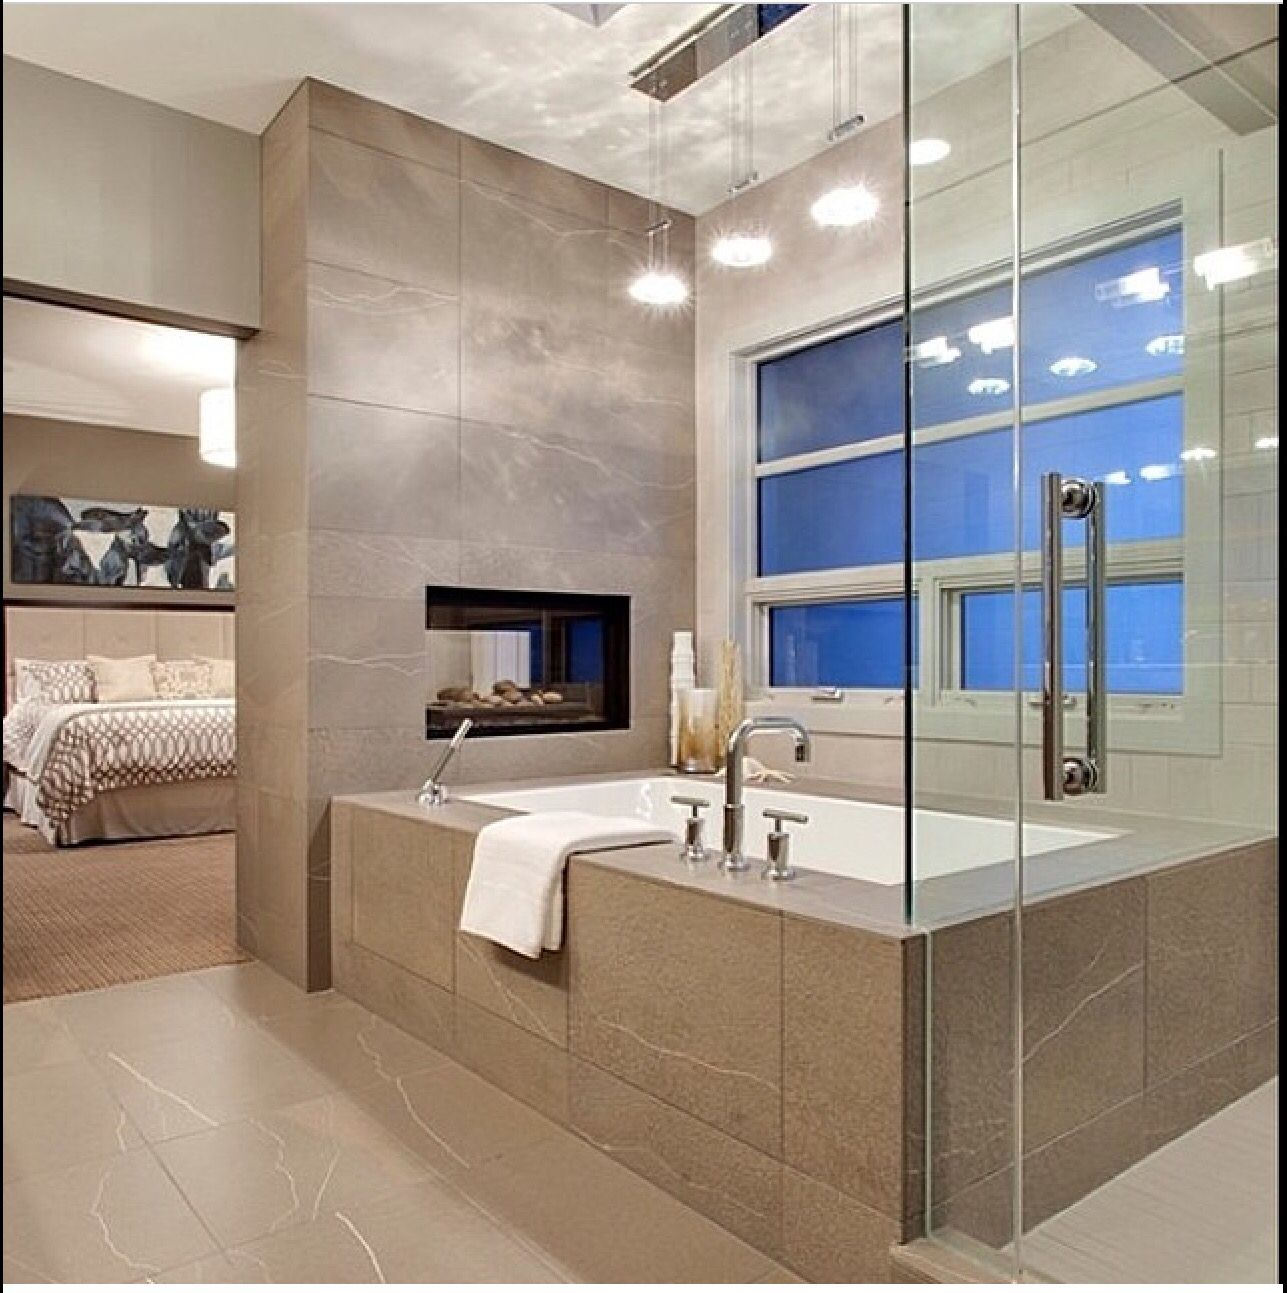 two-way fireplace separates bedroom and bath | Cozy ...